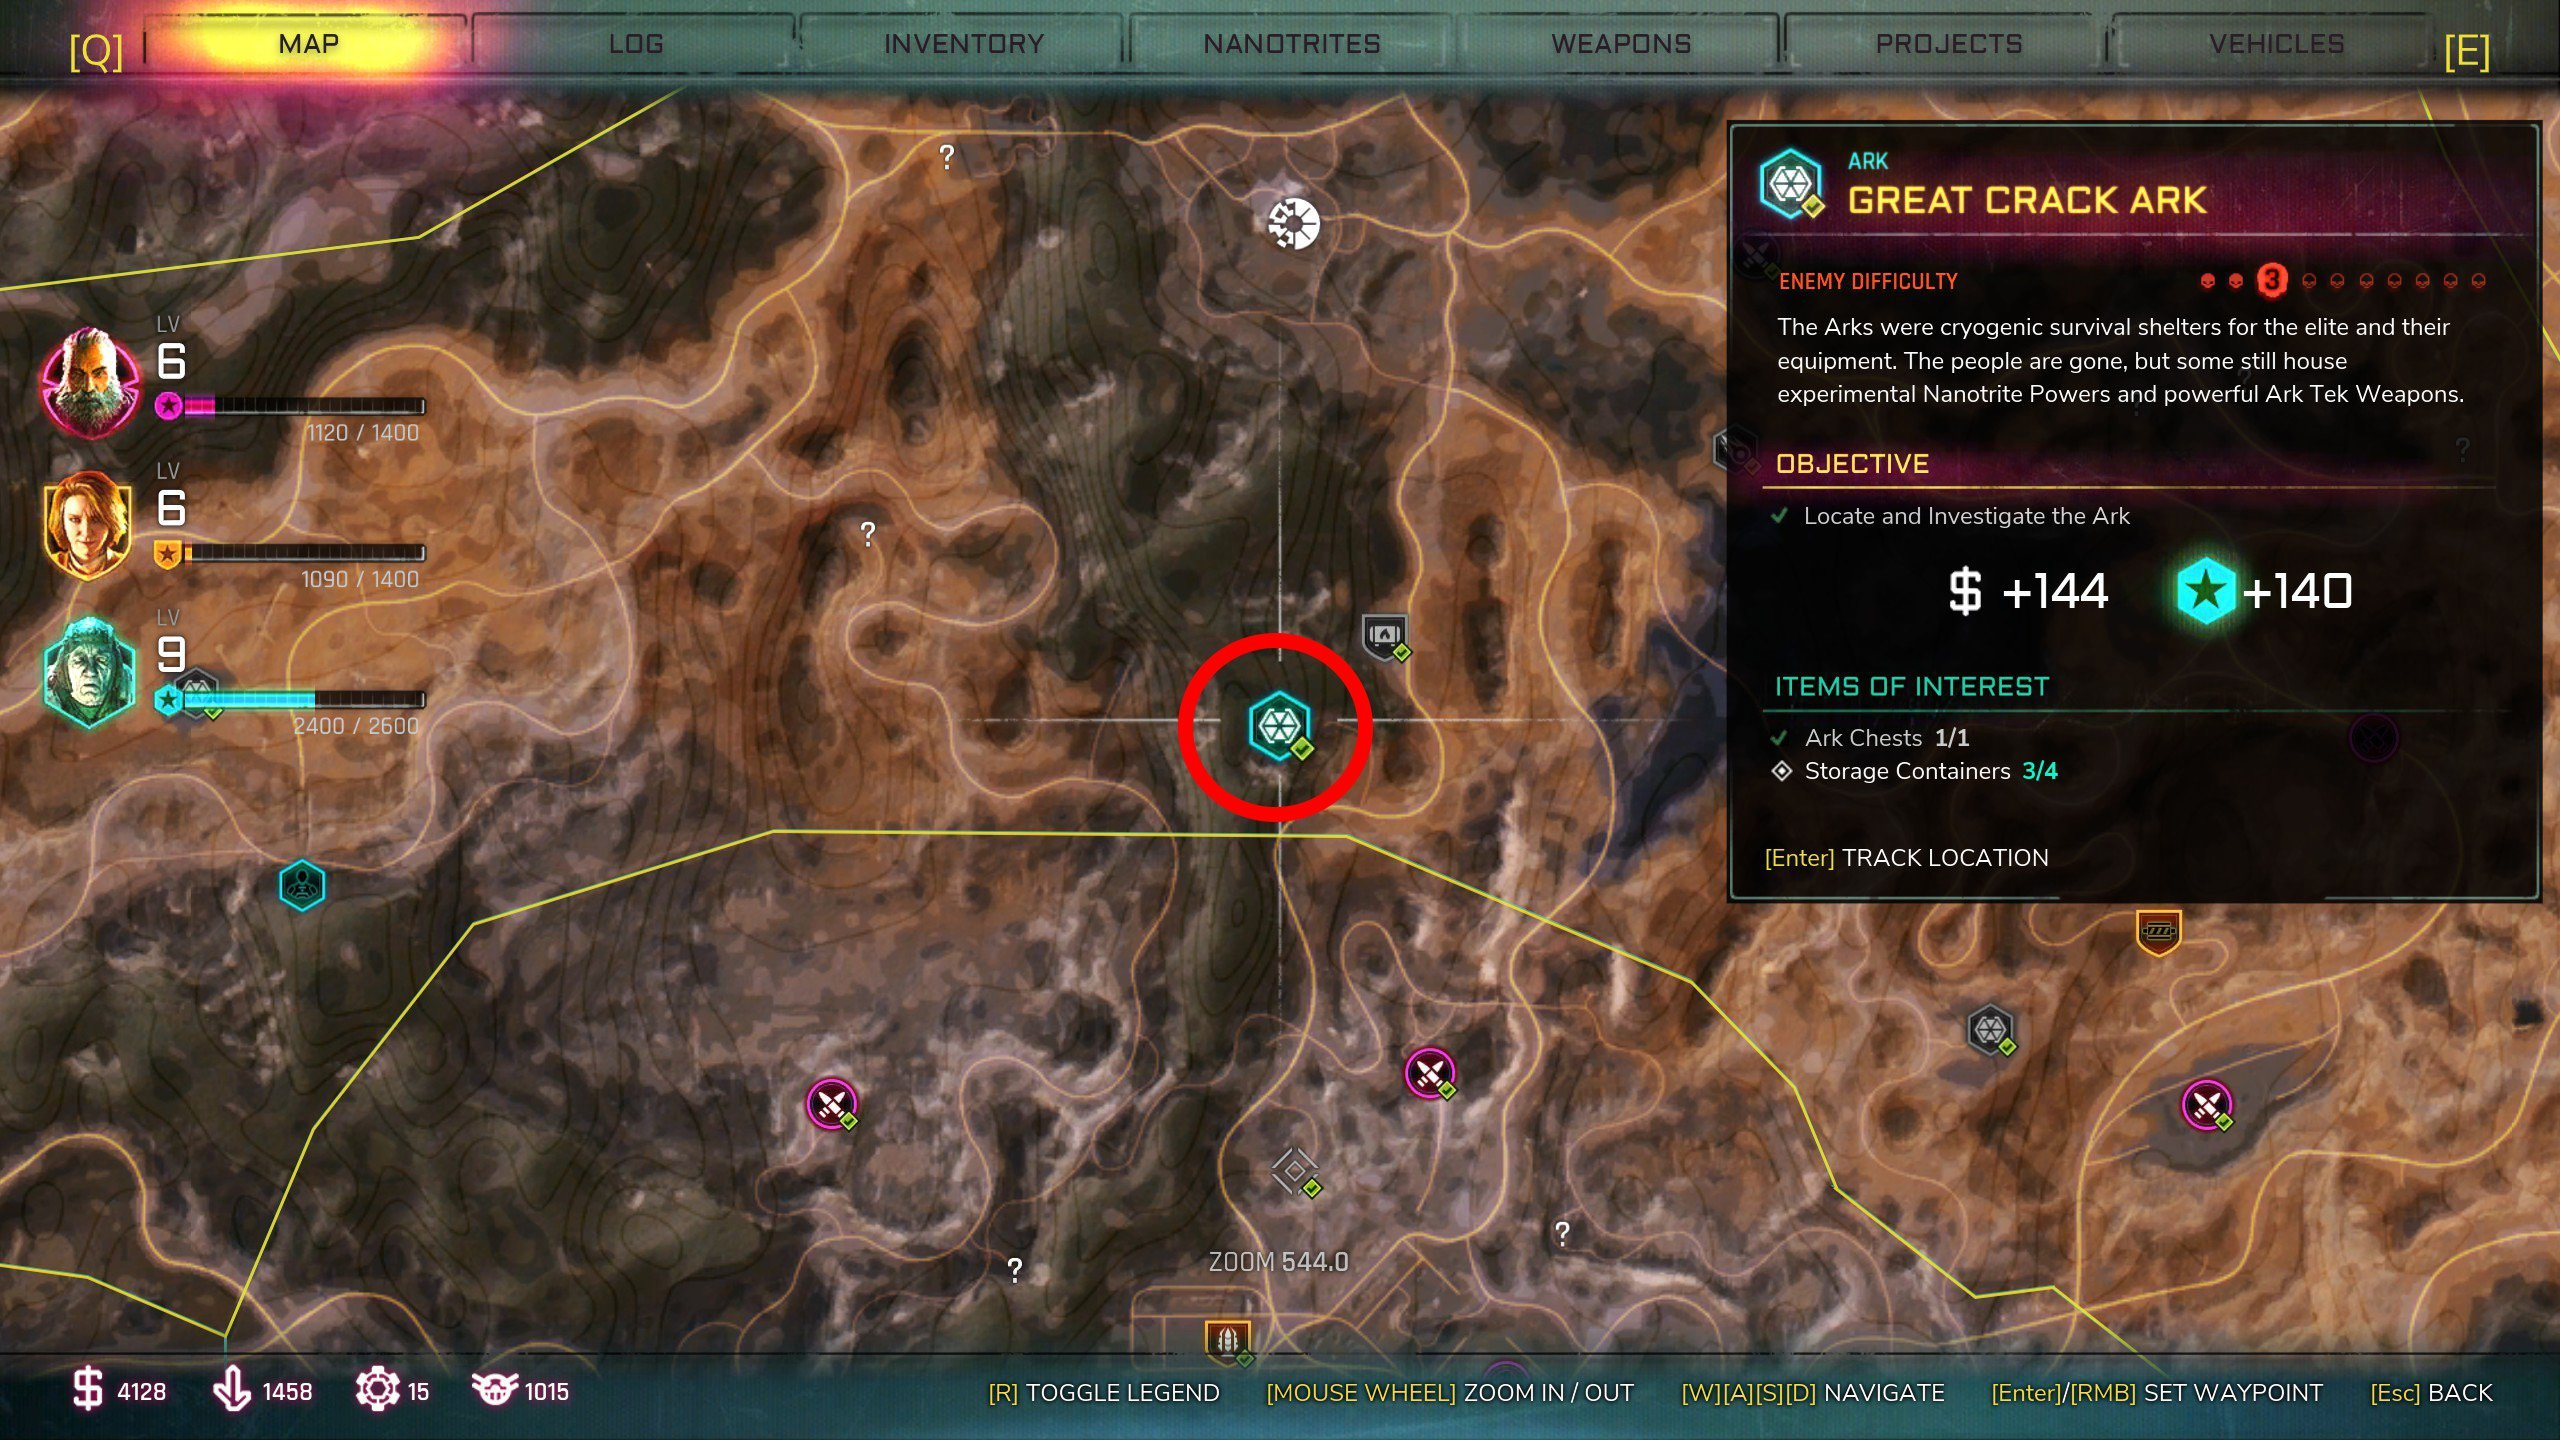 Great Crack Ark Location in Rage 2